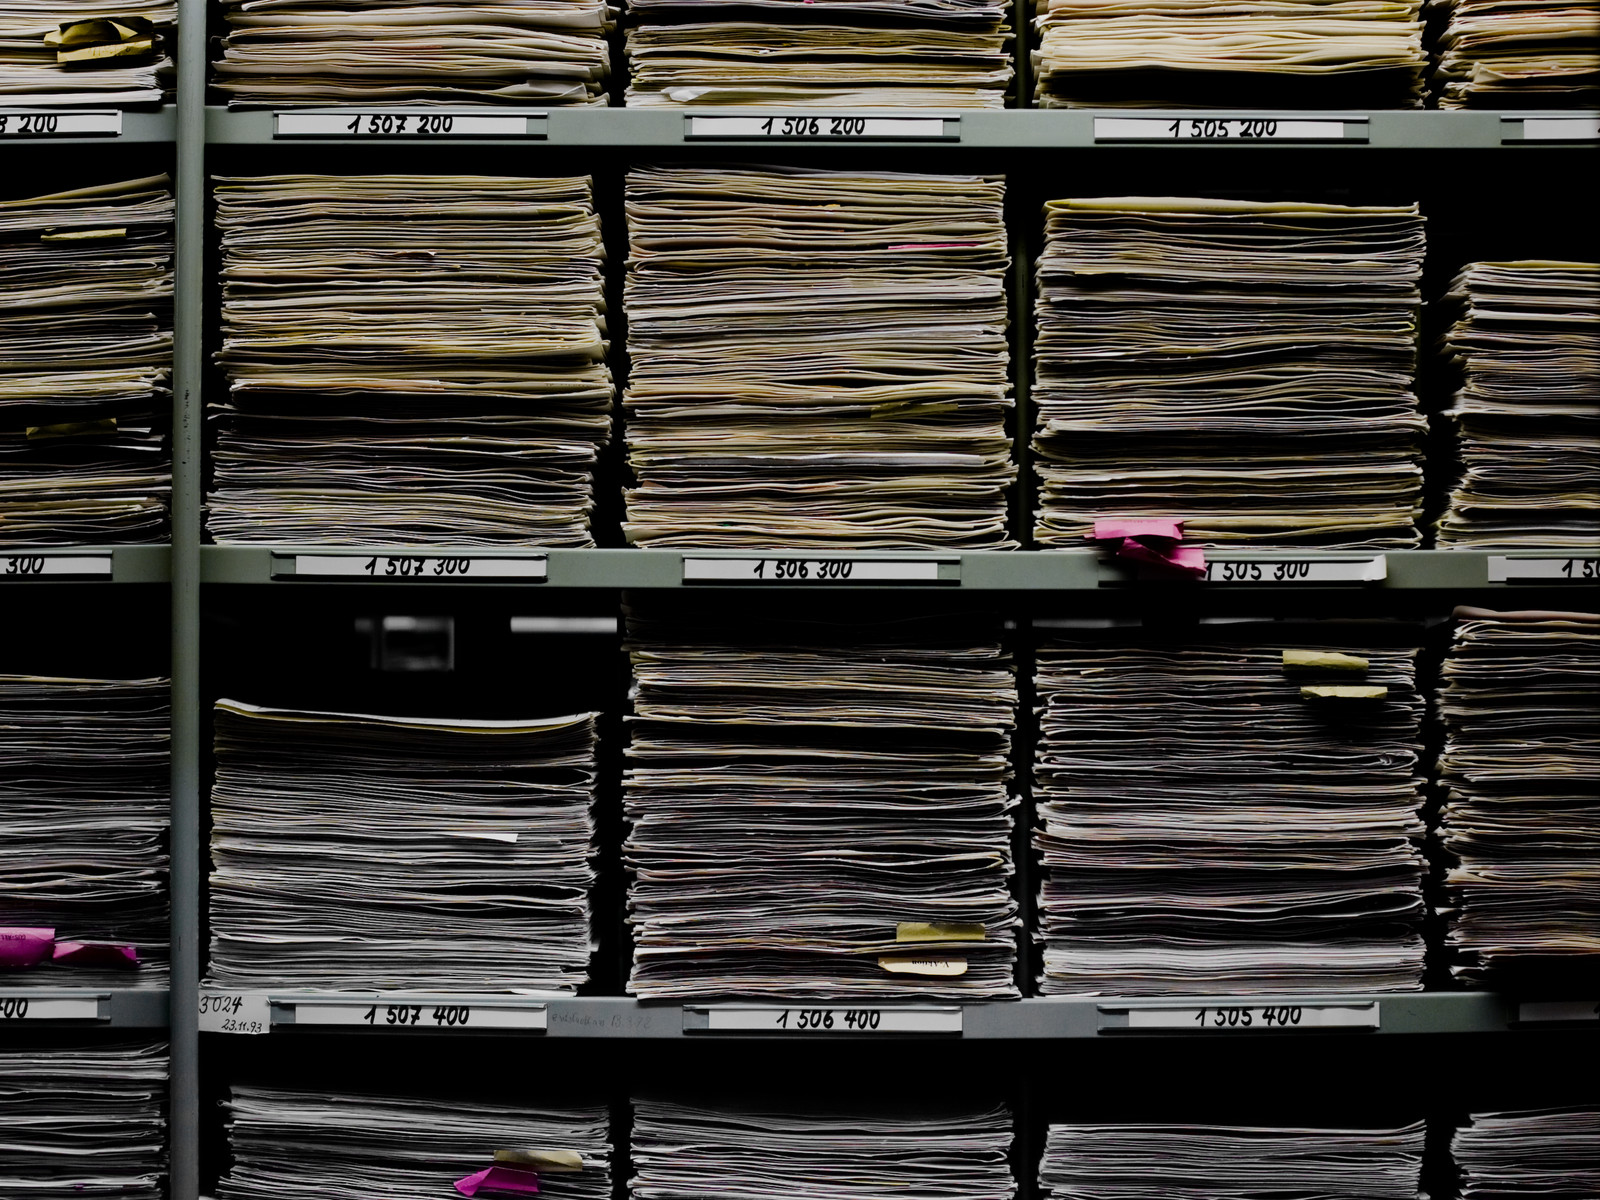 Close-up view of the Processing Unit of the International Tracing Service showing shelves with documents filed horizontally.   These are the files generated by nearly 3 million enquiries.